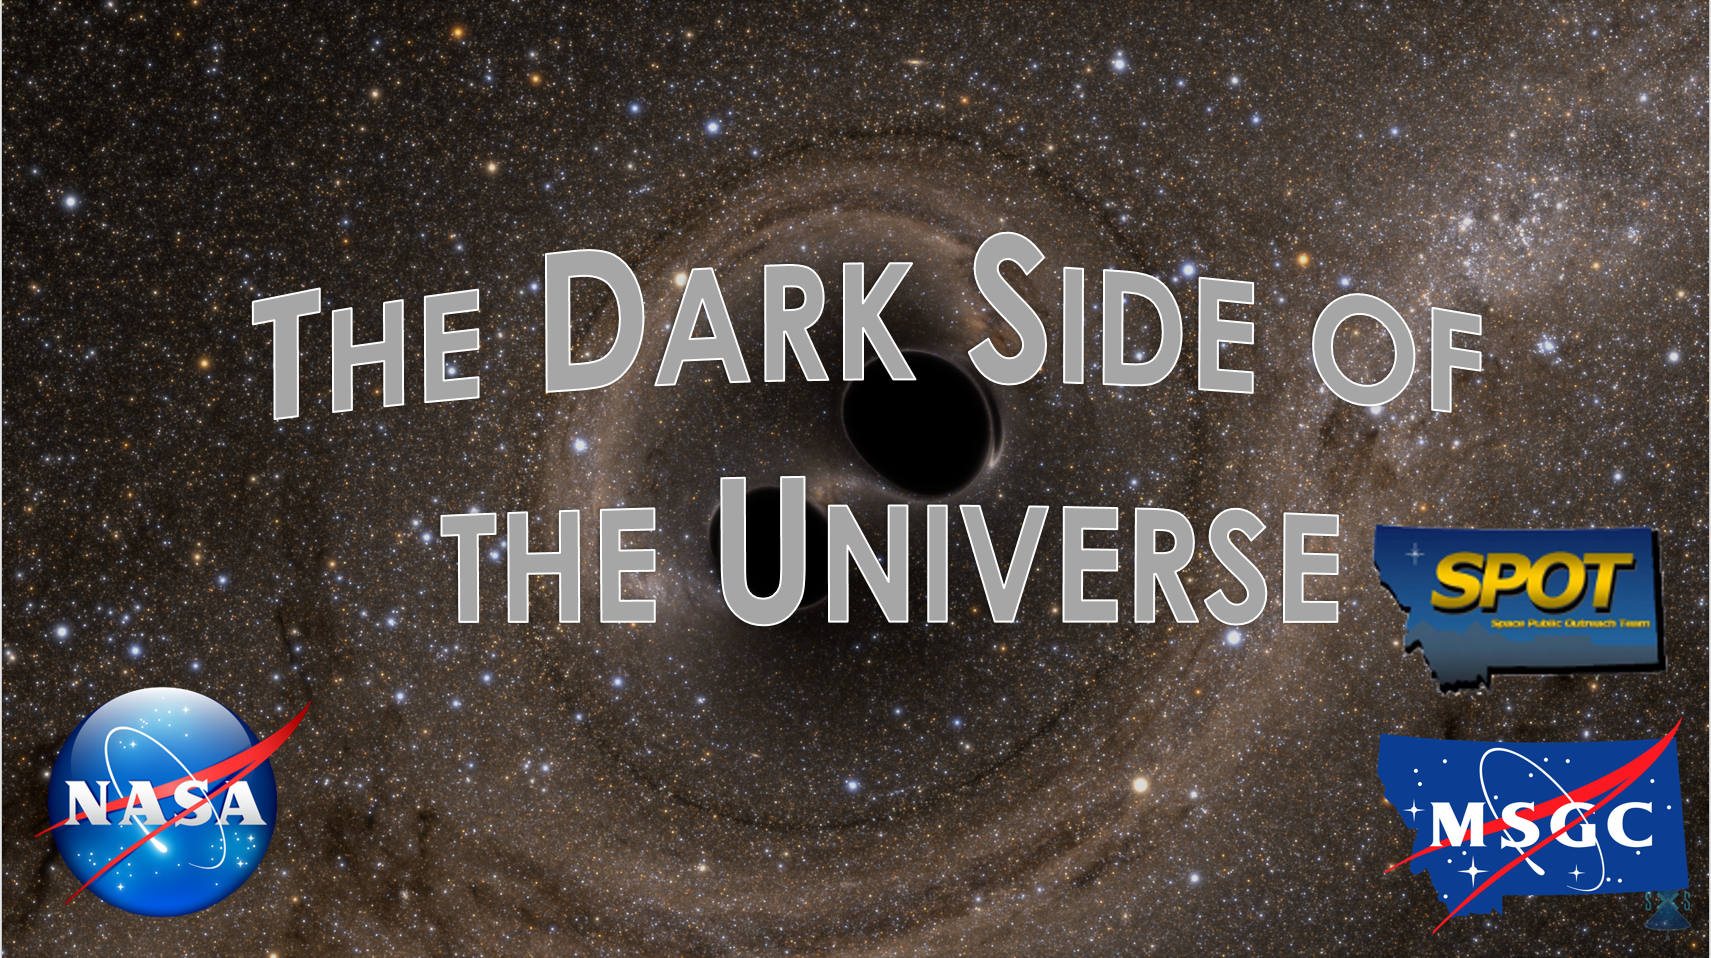 The Dark Side of the Universe SPOT Show